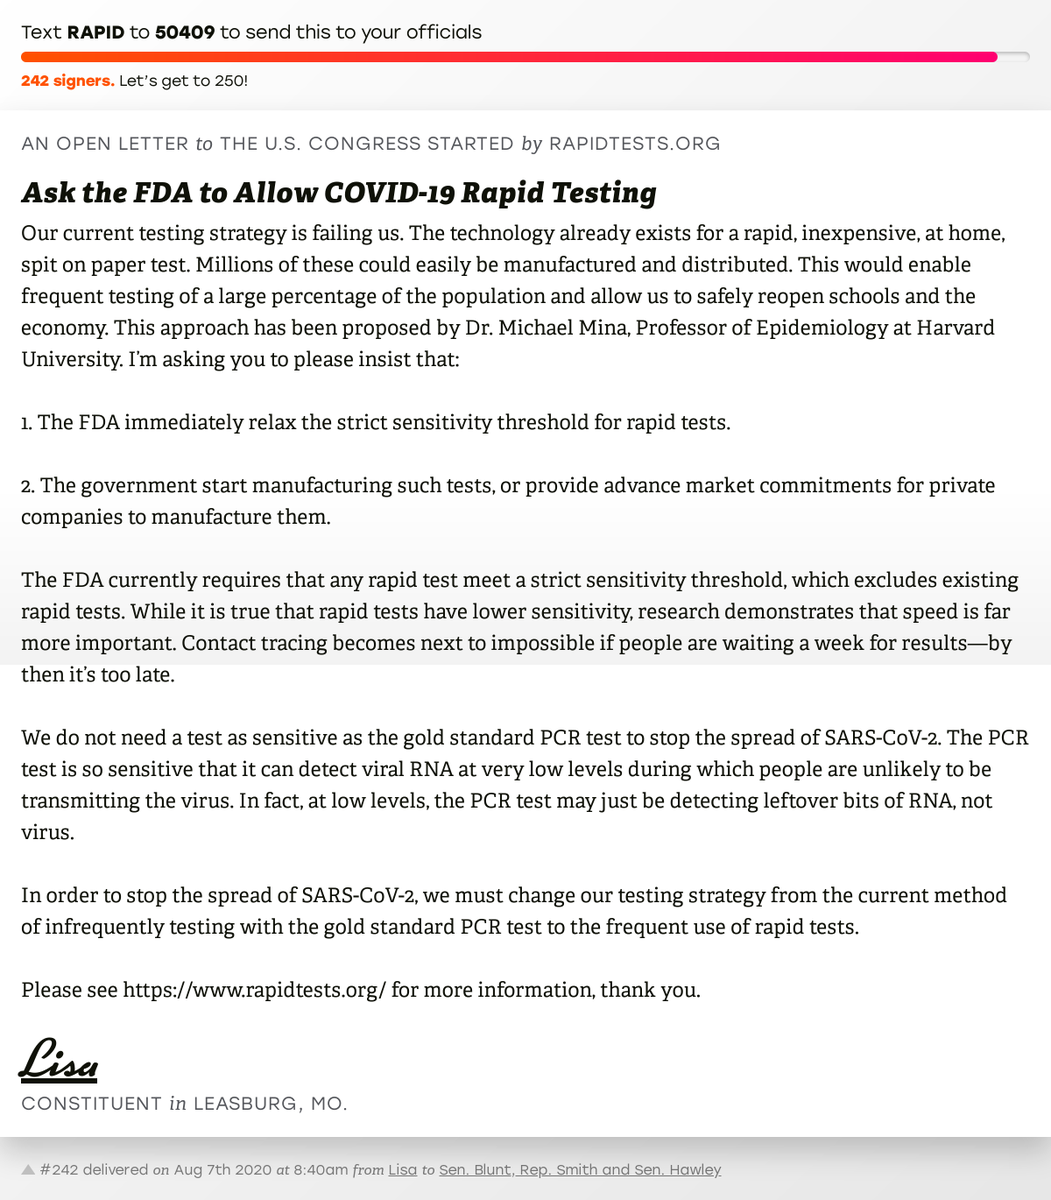 "🖋 Sign ""Ask the FDA to Allow COVID-19 Rapid Testing"" and I'll deliver a copy to your officials: https://t.co/twhsozTwHV  📨 No. 242 is from Lisa to @RoyBlunt, @RepJasonSmith and @SenHawleyPress #MO08 #MOpolitics https://t.co/MJgO5kmrqh"